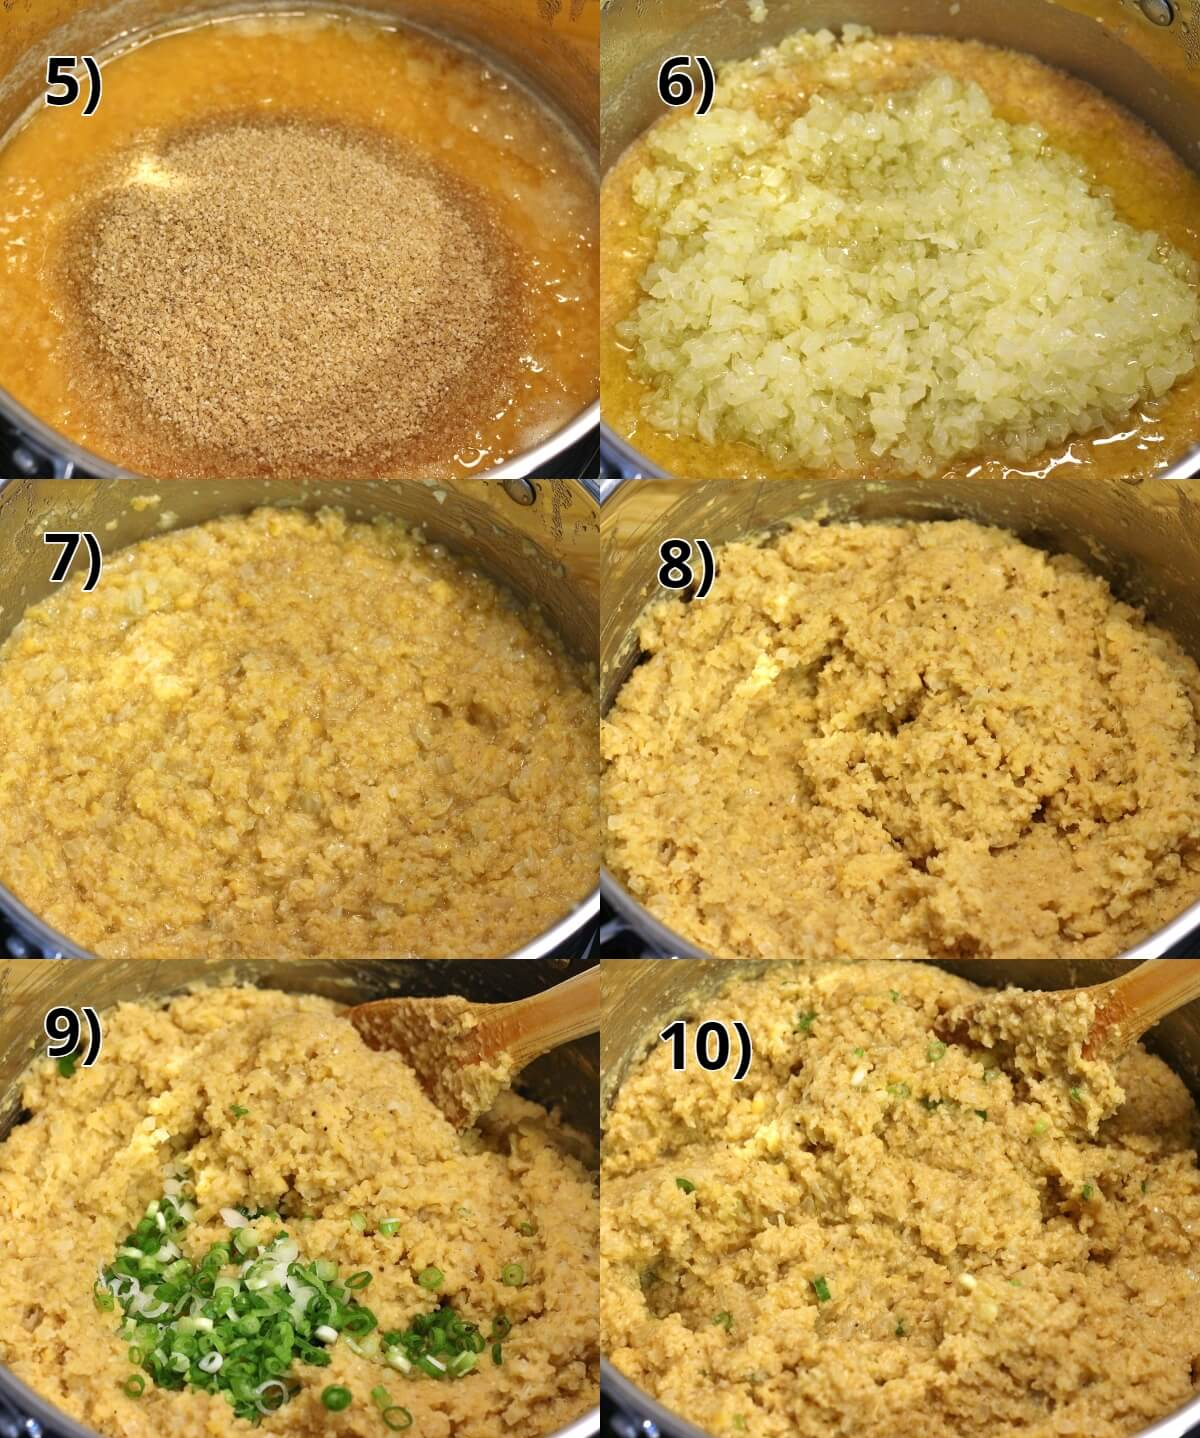 step by step photos of making red lentil kofte with onions and bulgur wheat